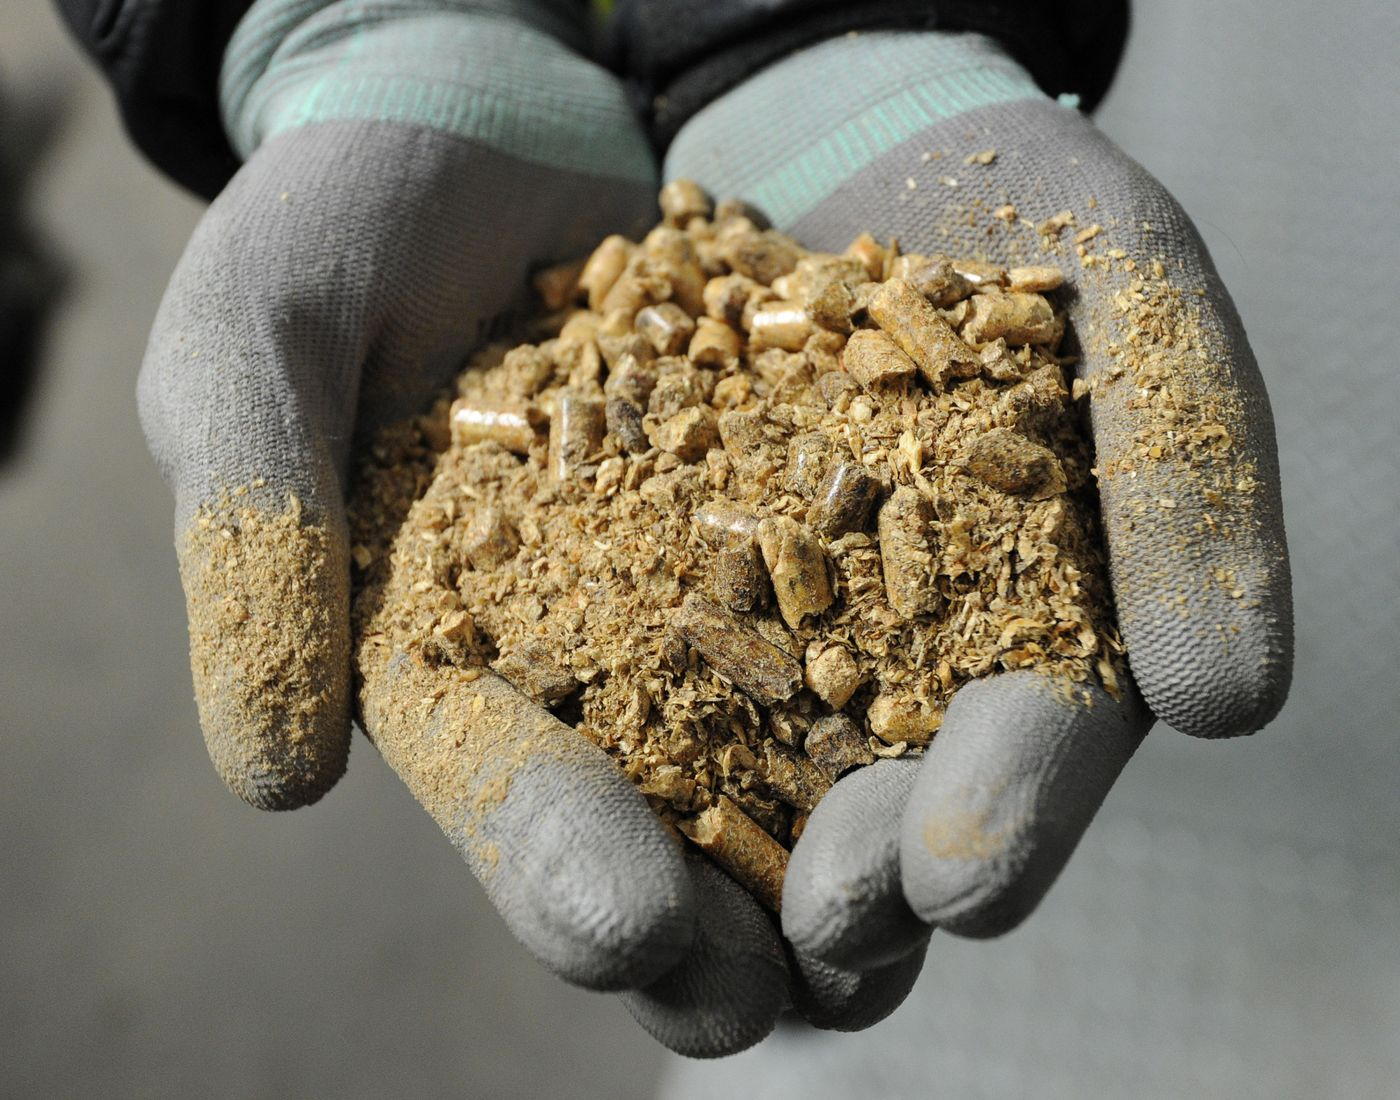 Europe Needs to Be Frank About Biomass